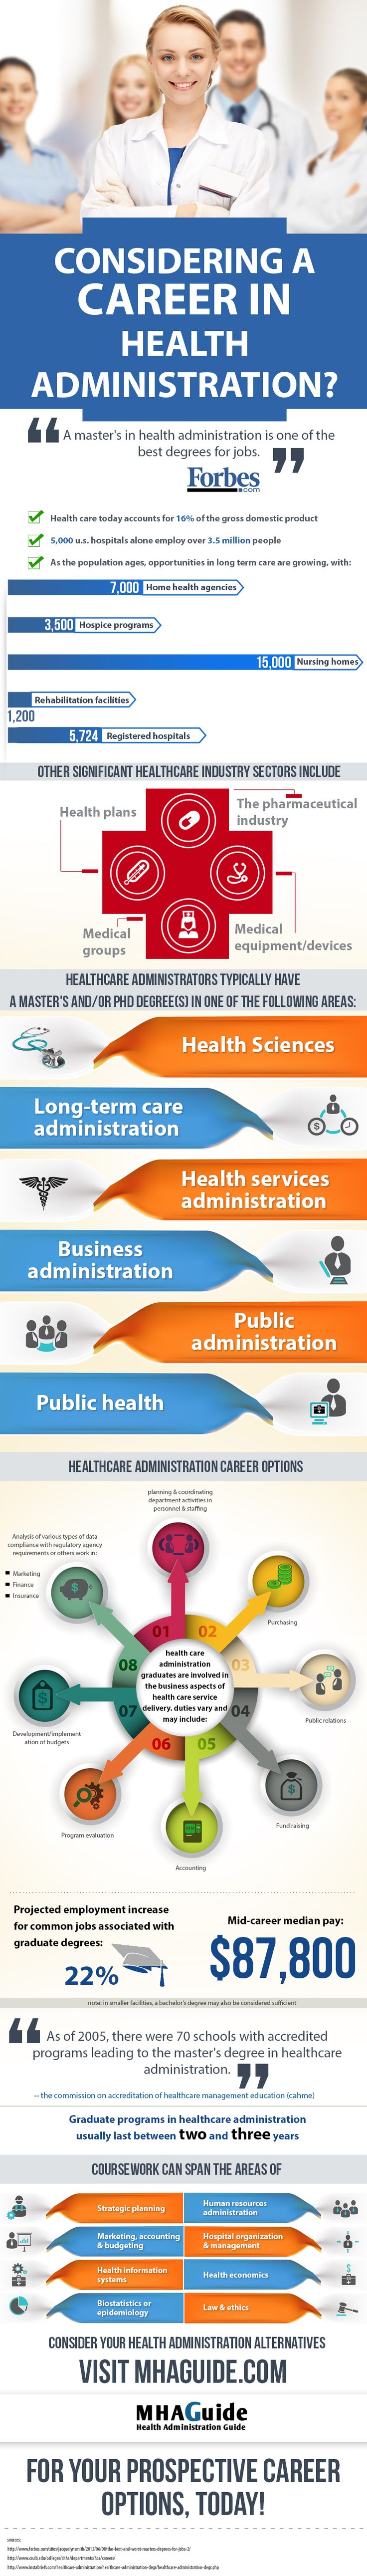 http://mhaguide.com/choose-health-administration/  Why Choose Health Administration [Infographic]